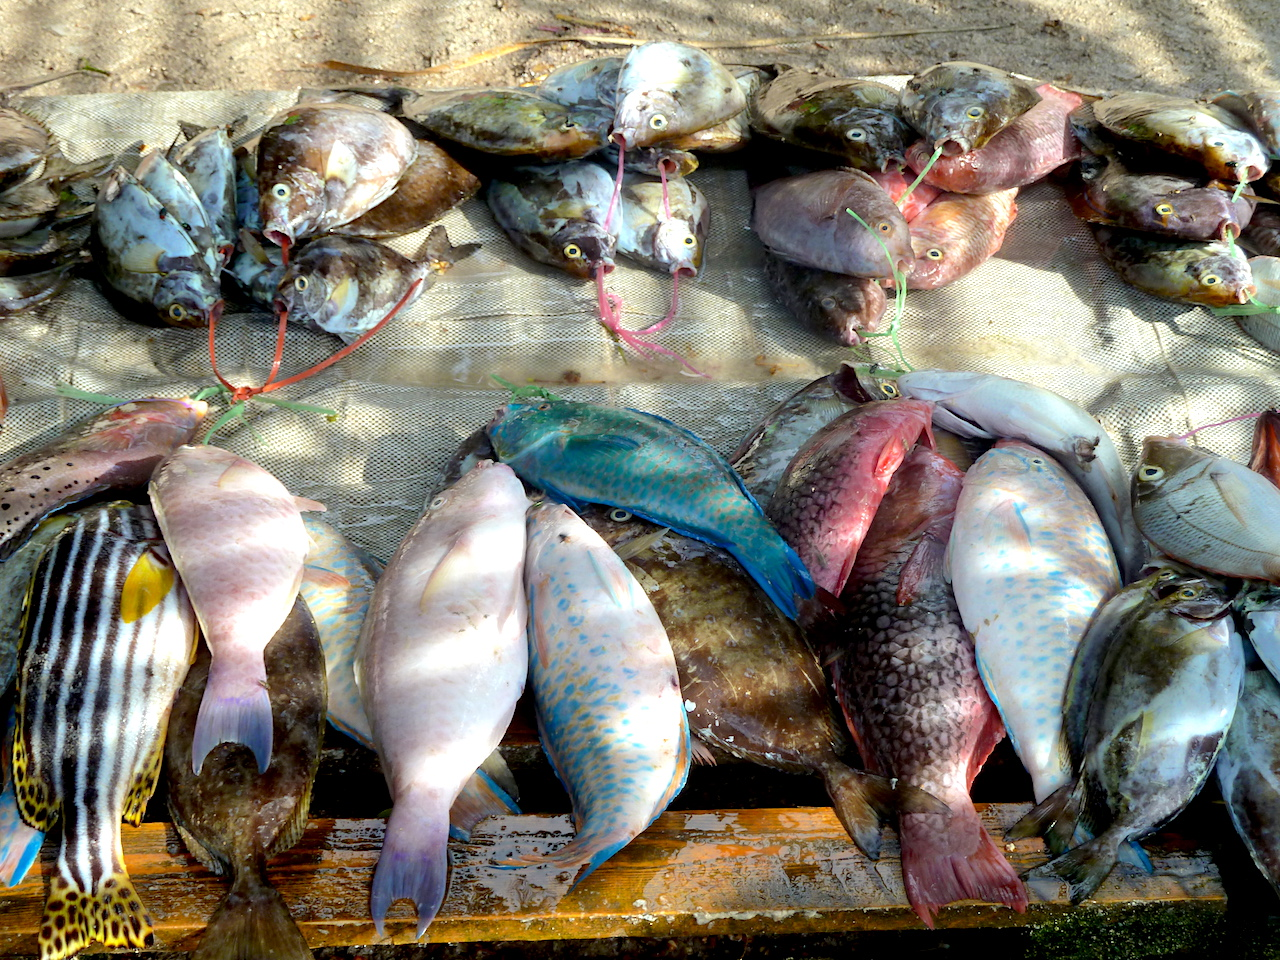 Fish on the side of the road on Mahé, Seychelles. #FishMarket #Mahe #Seychelles #SeychellesBeach